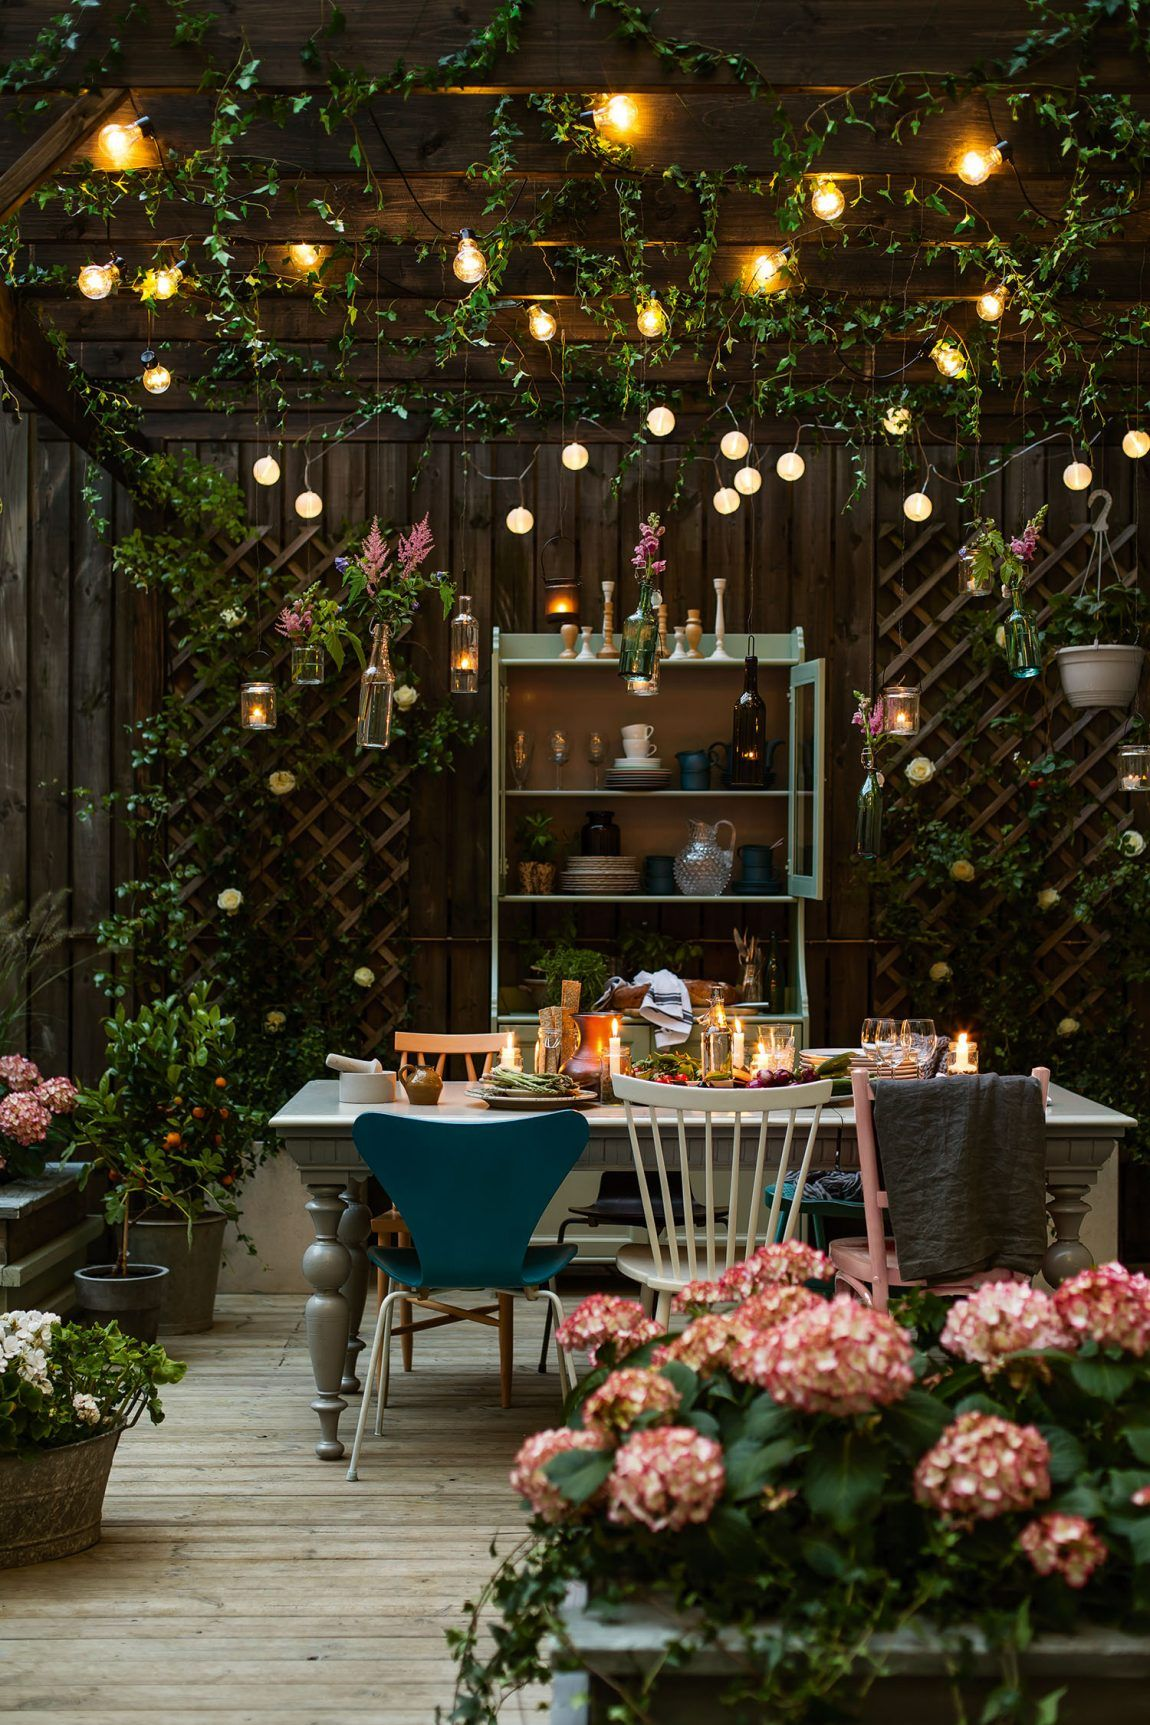 The Possibilities For Outdoor Lighting